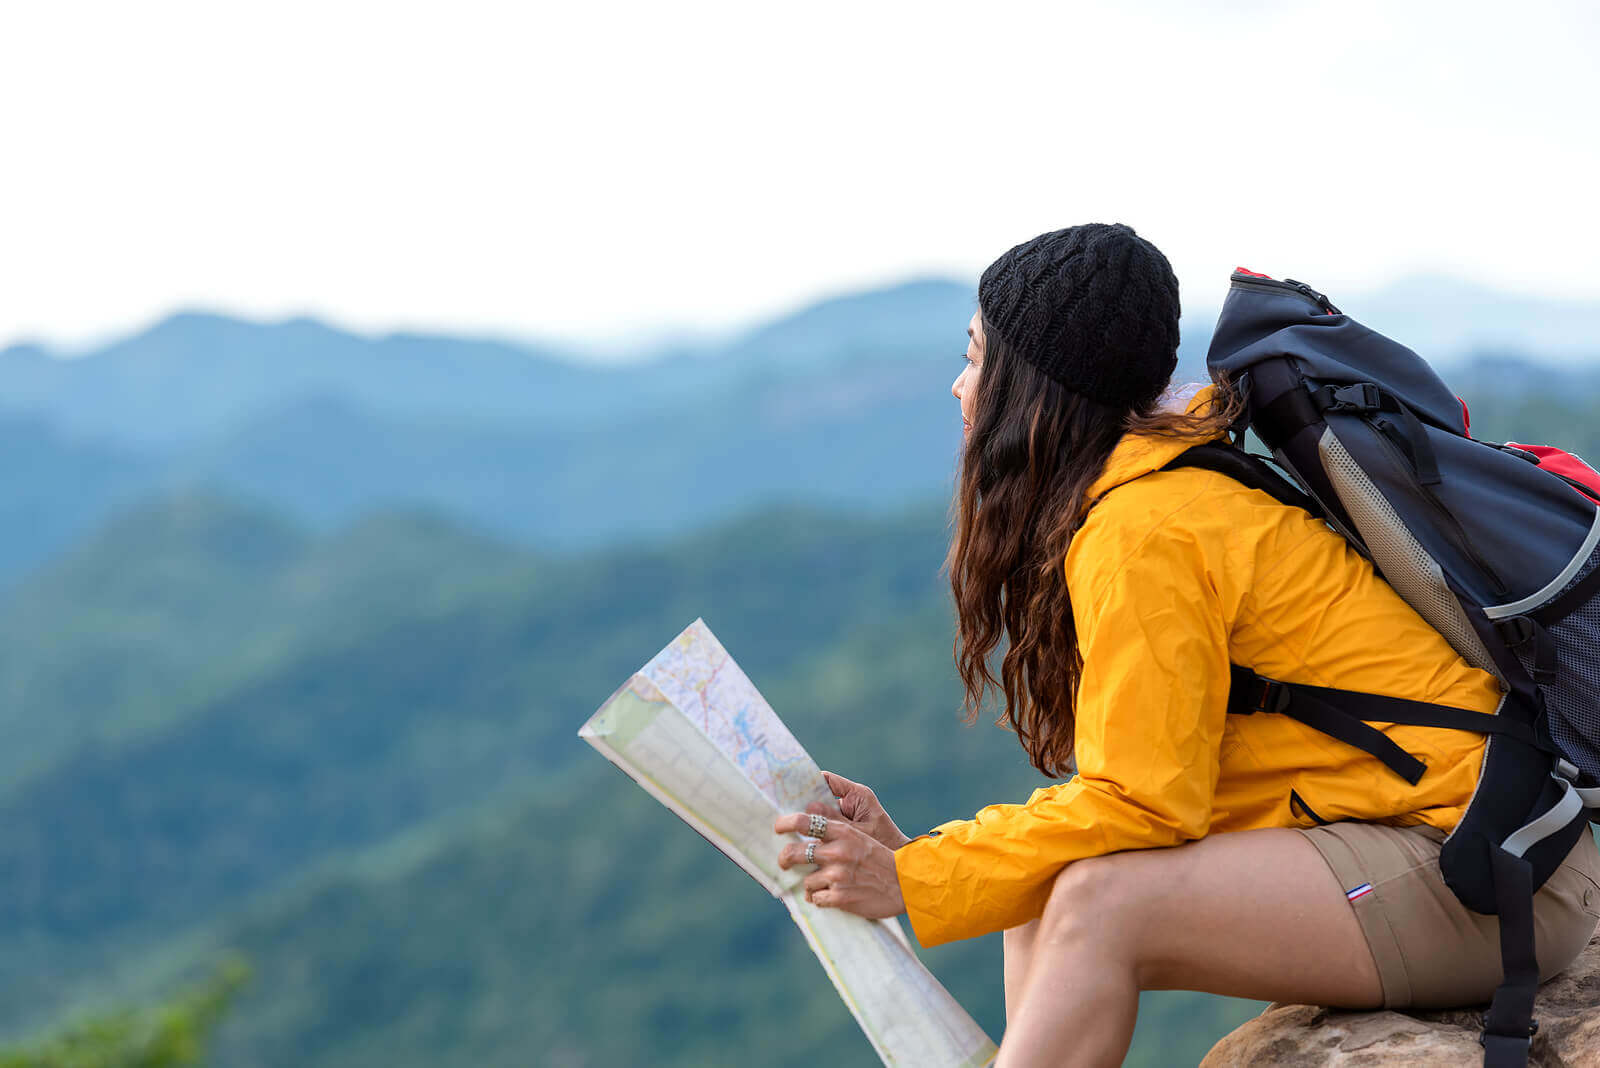 How to Prepare Your Backpack to Go Hiking